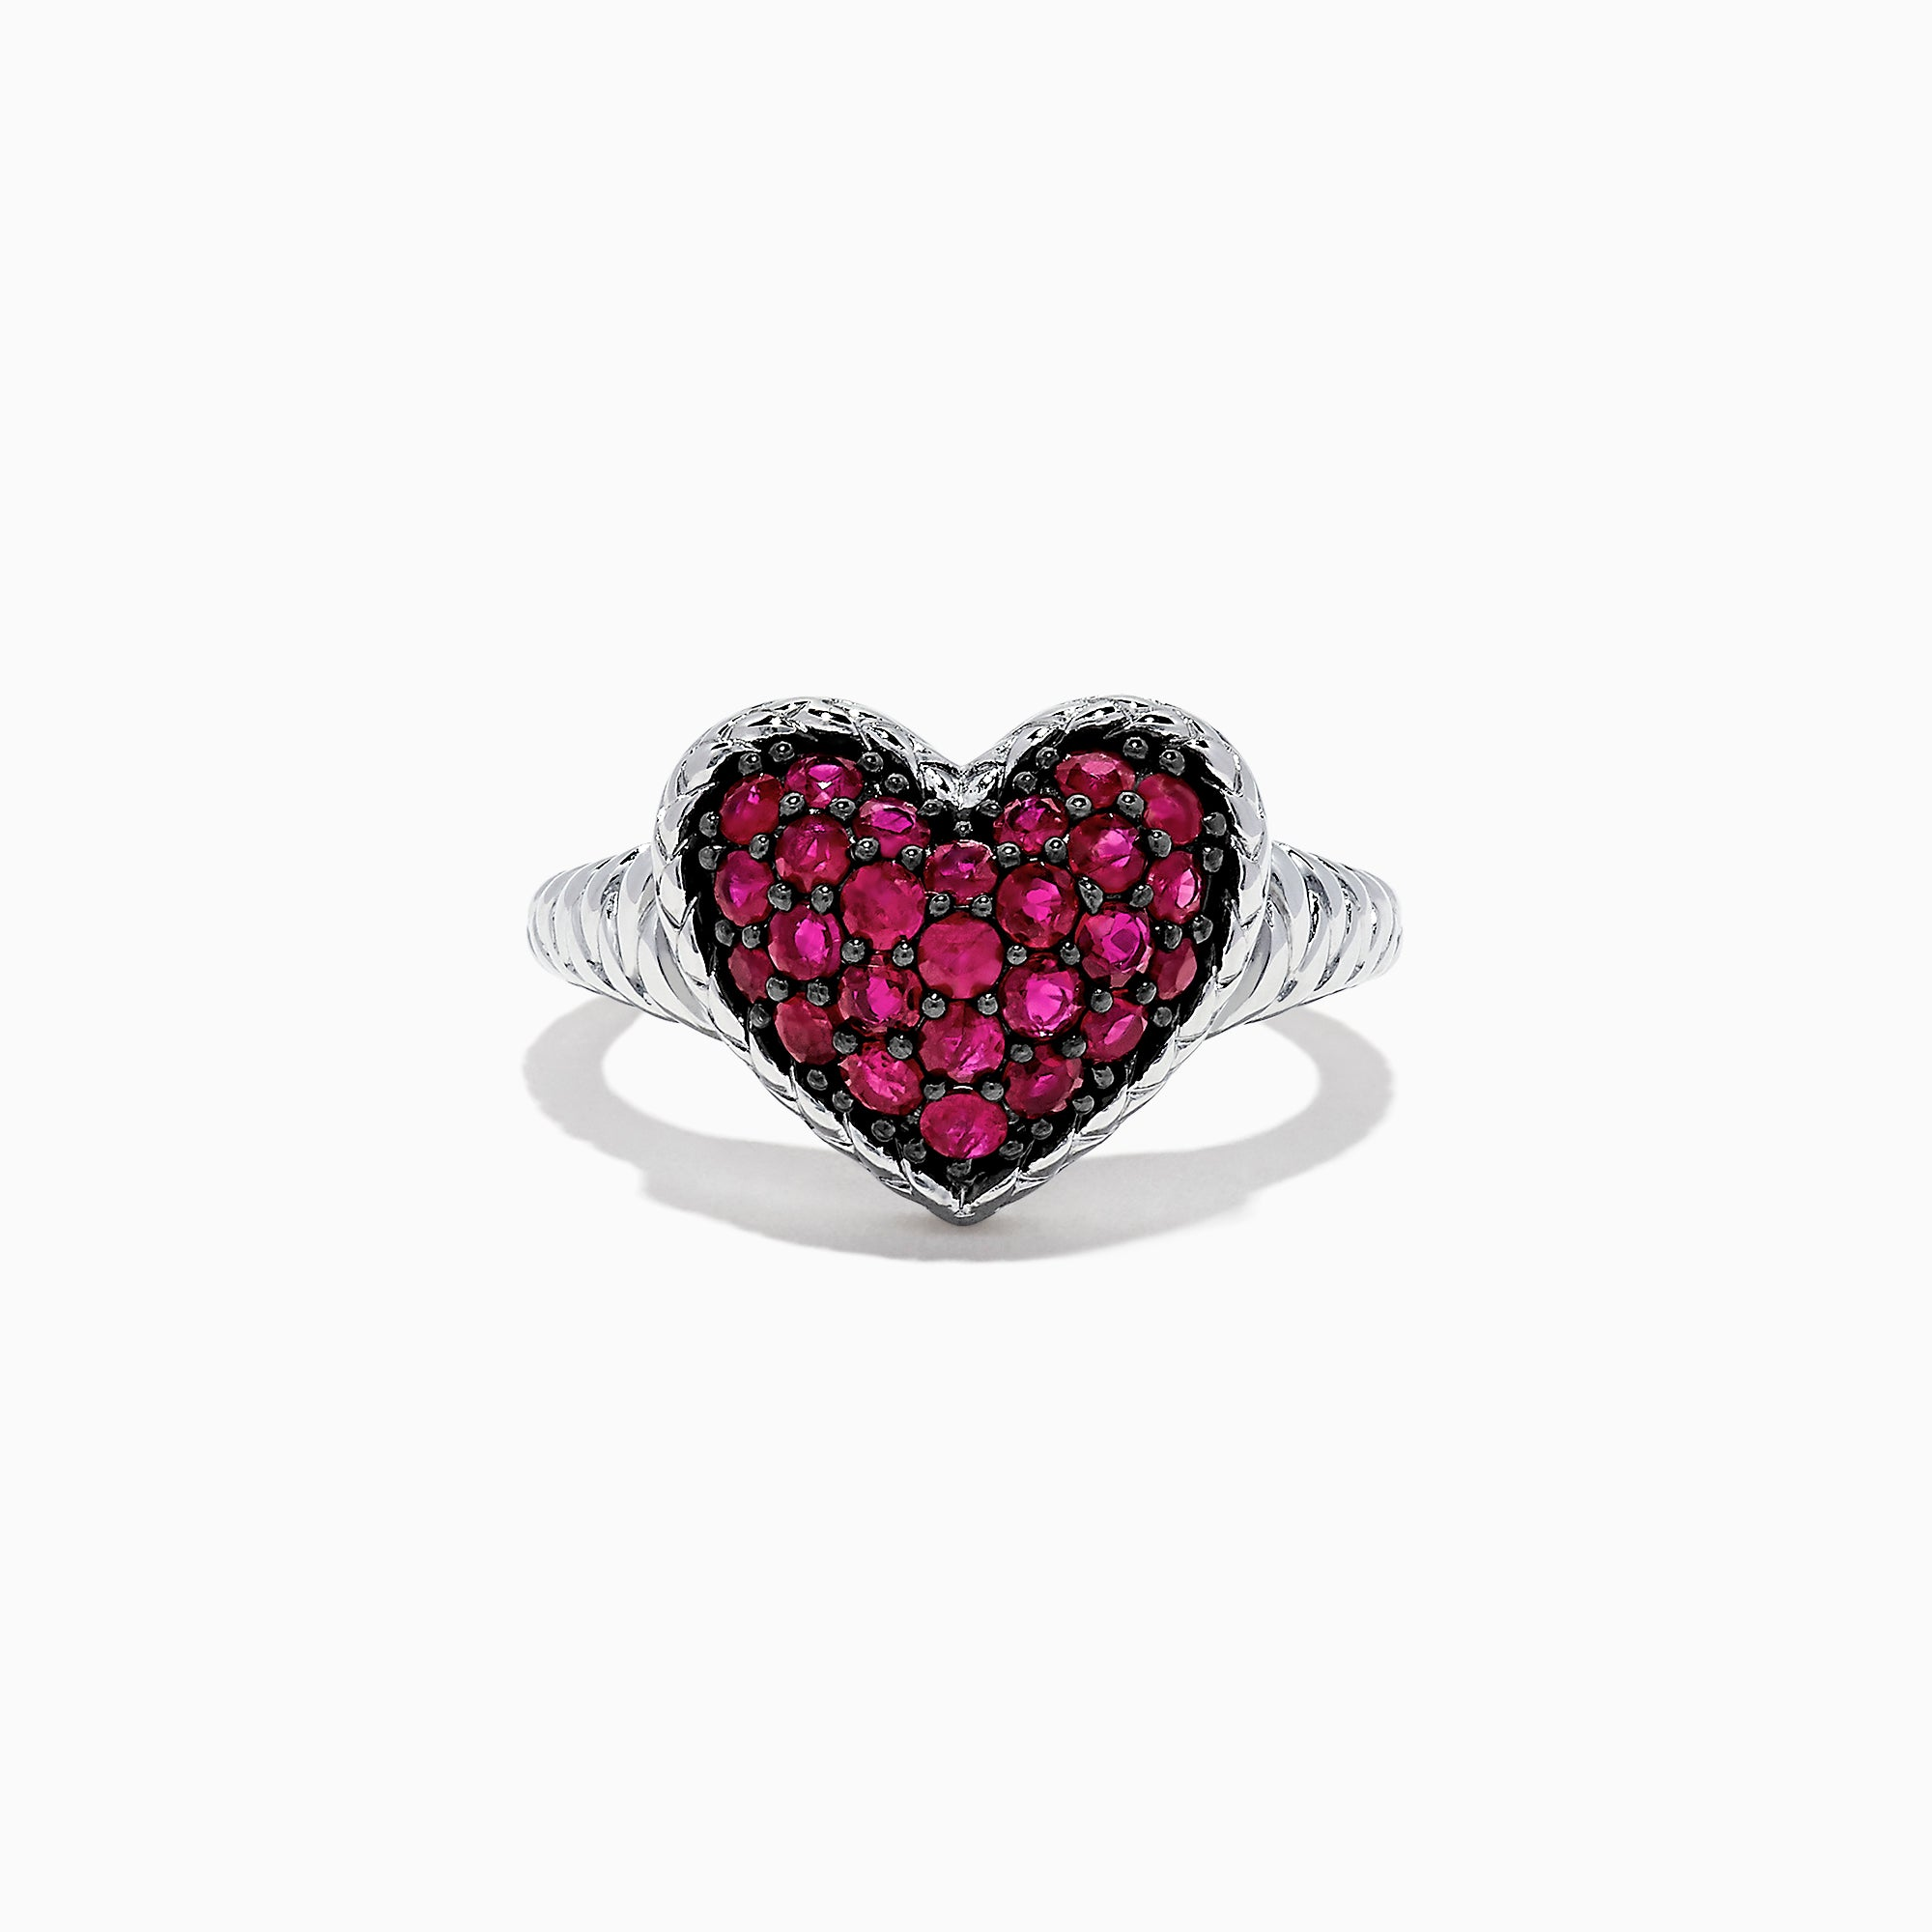 Effy 925 Sterling Silver Ruby Heart Ring, 1.02 TCW